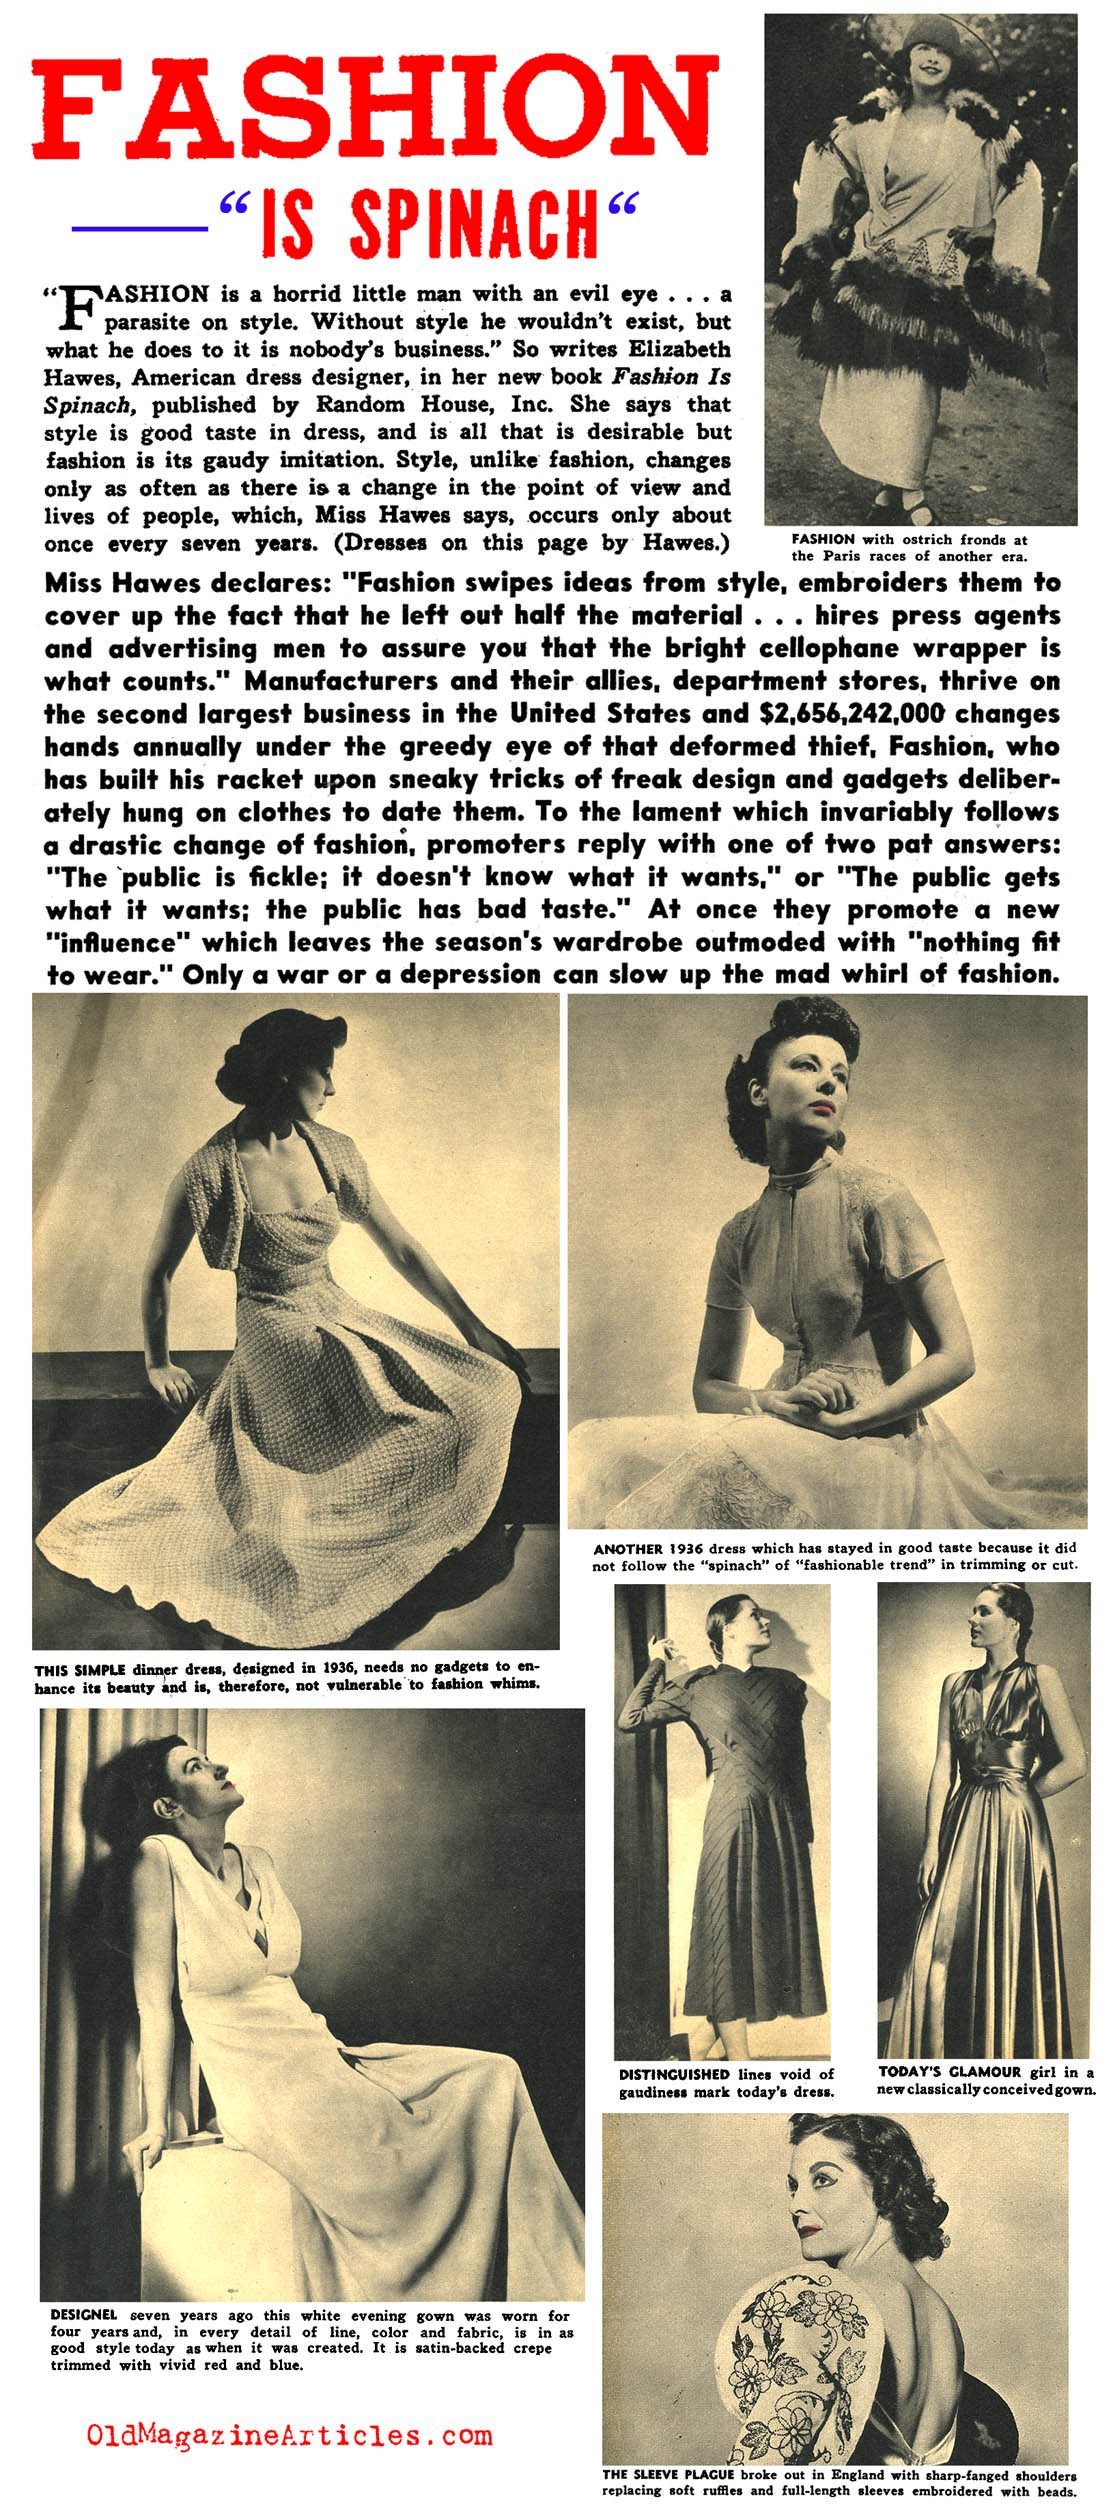 ''Fashion is Spinach'' (Focus Magazine, 1938)